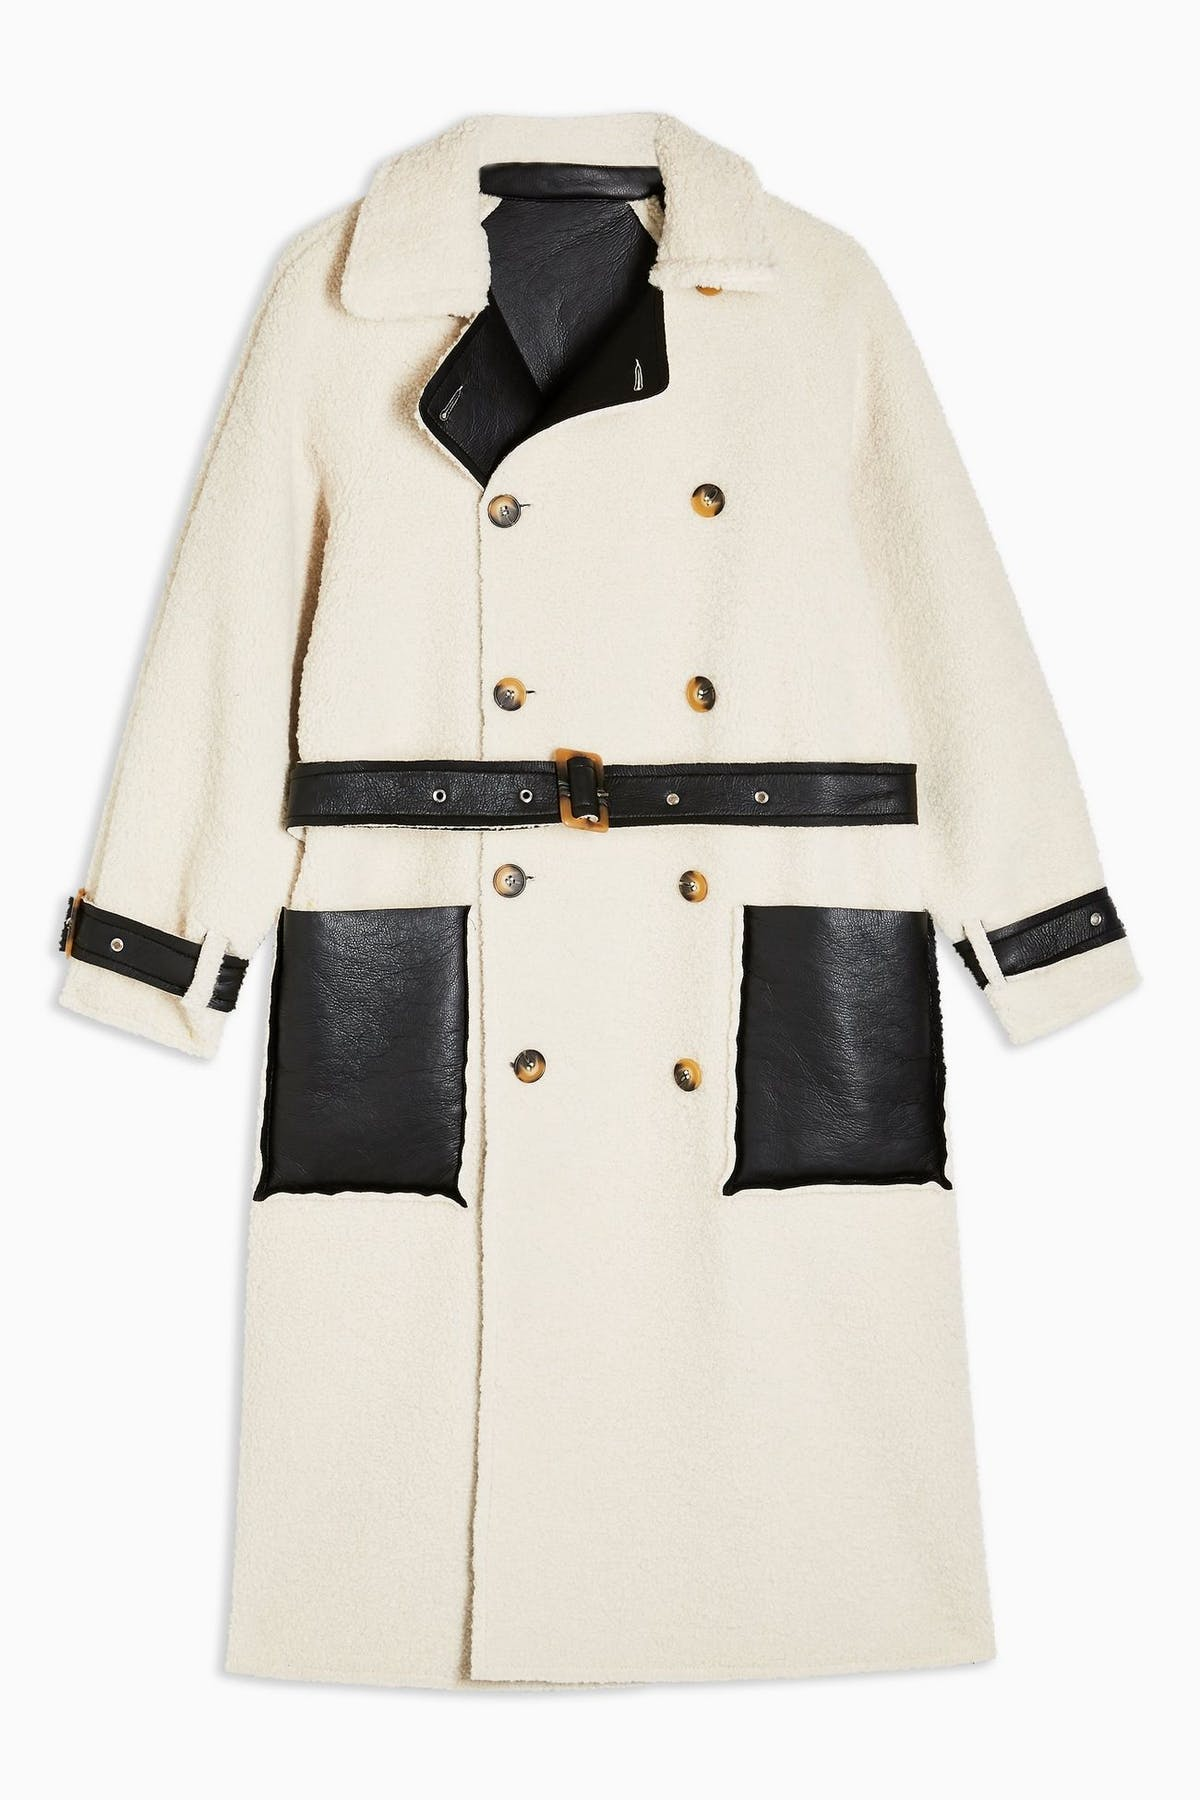 search for original top-rated cheap full range of specifications Under £100 coats: best high street coats